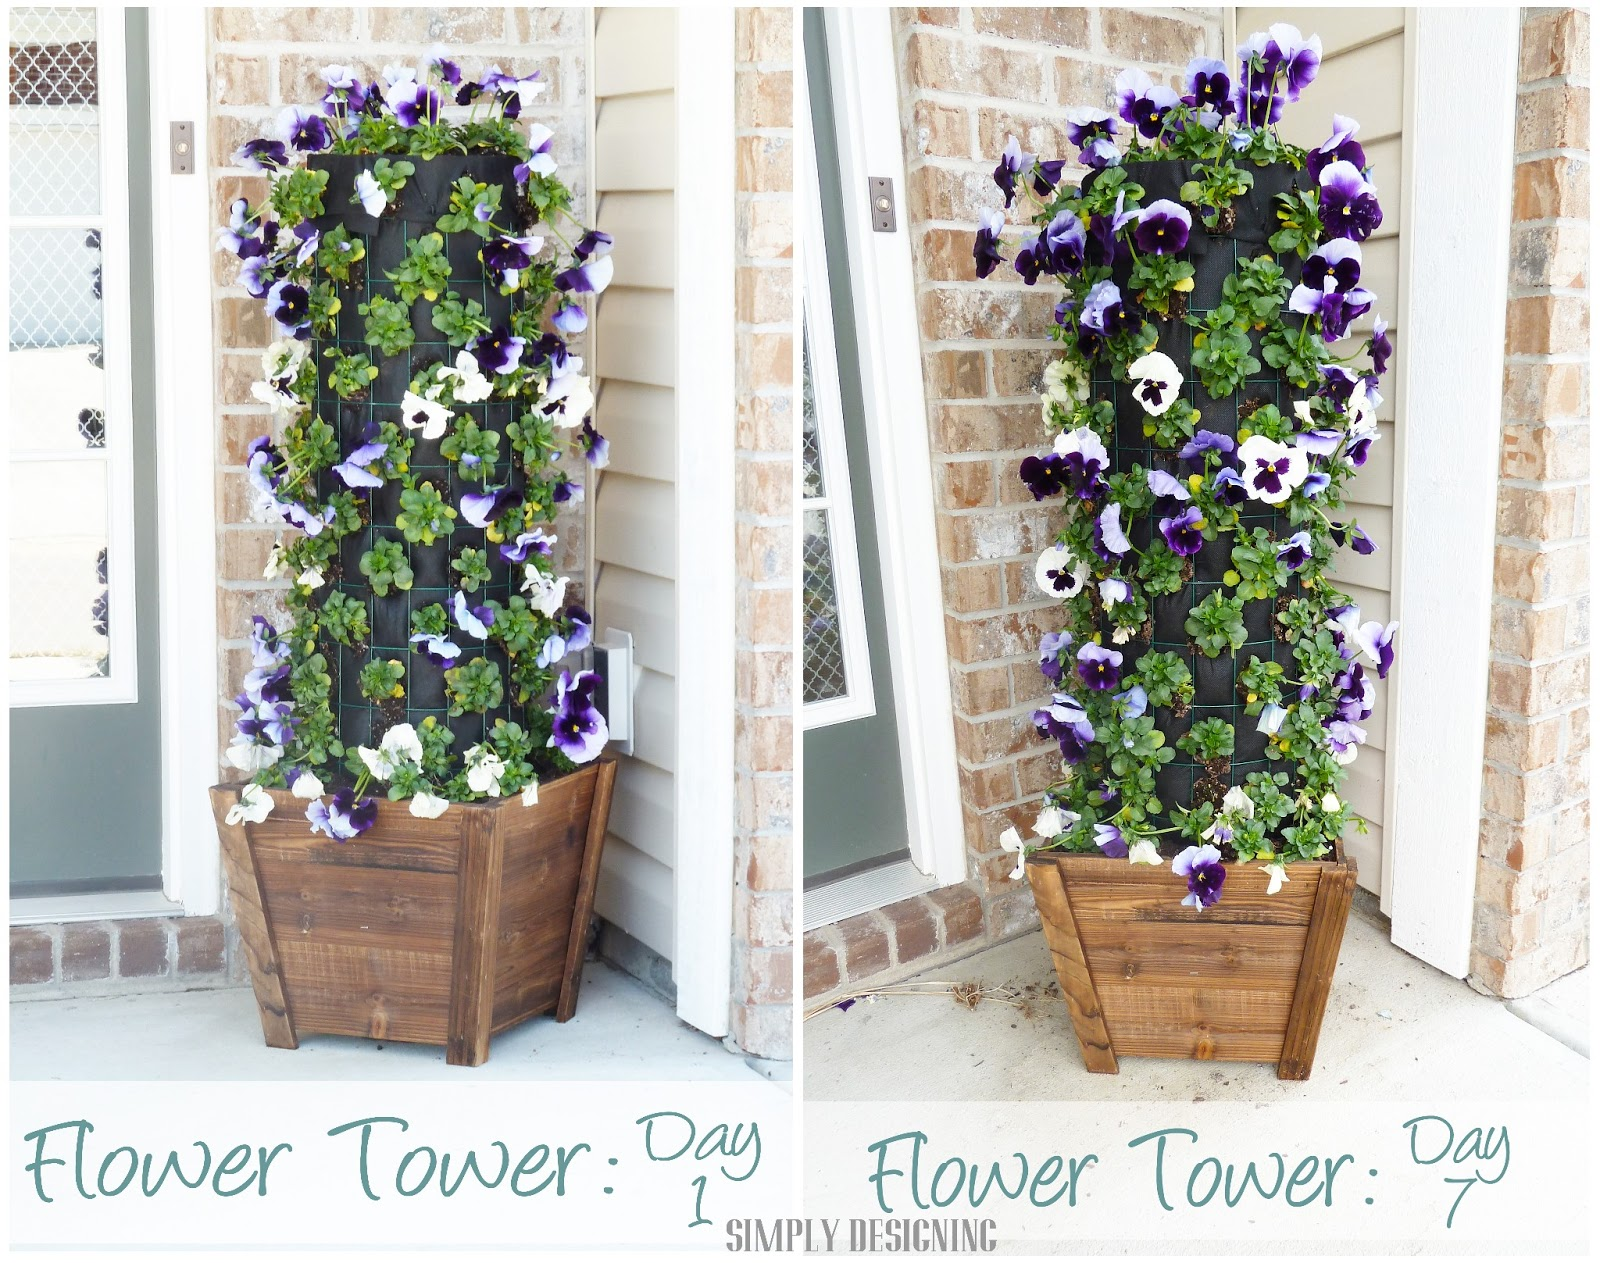 How To Make Beautiful Flower Pots At Home Diy Flower Tower Part 4 Digin Heartoutdoors Spring